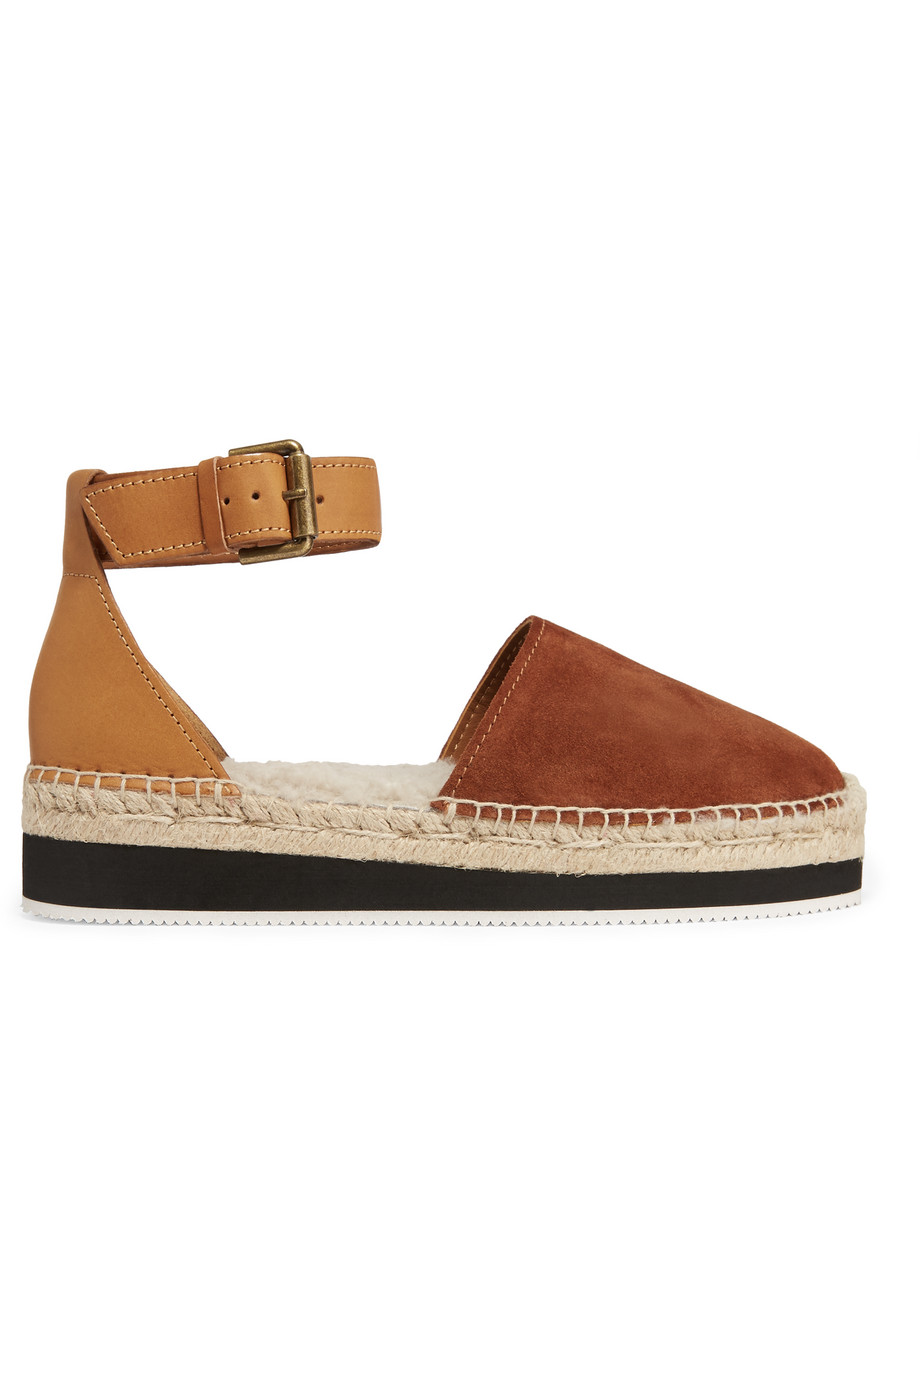 See by Chloé Shearling-Lined Suede and Leather Espadrilles, Tan, Women's US Size: 4.5, Size: 35